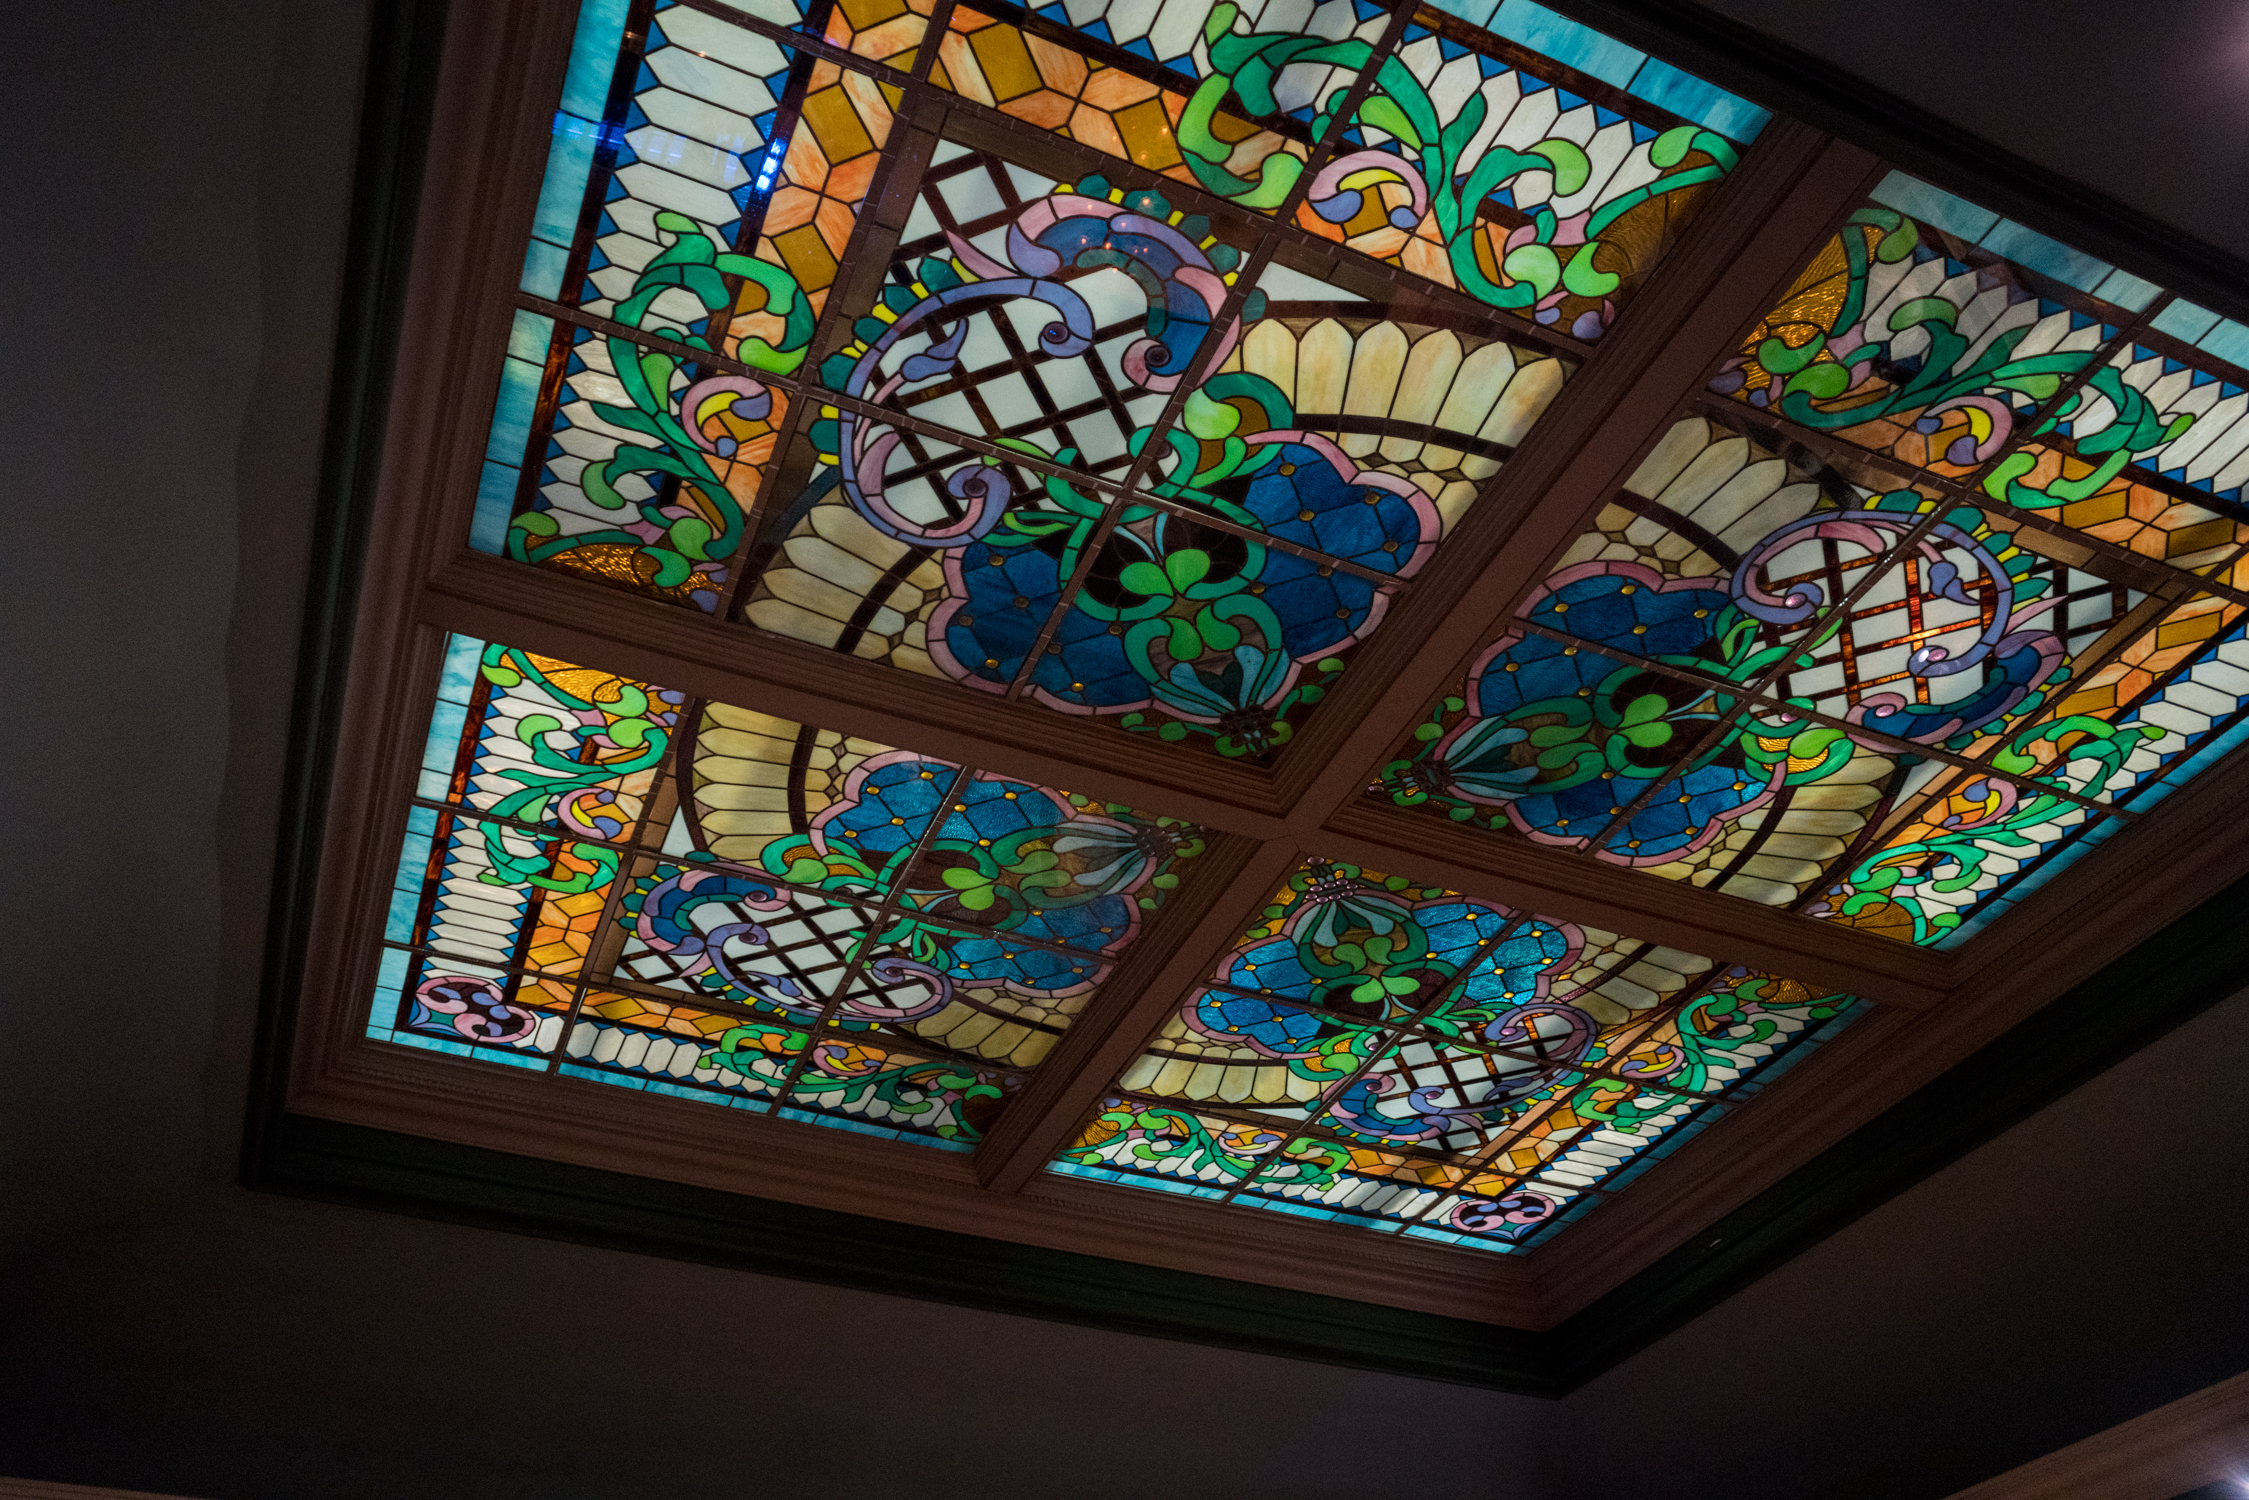 Lombard's Seafood Grille's interior stained glass decoration.